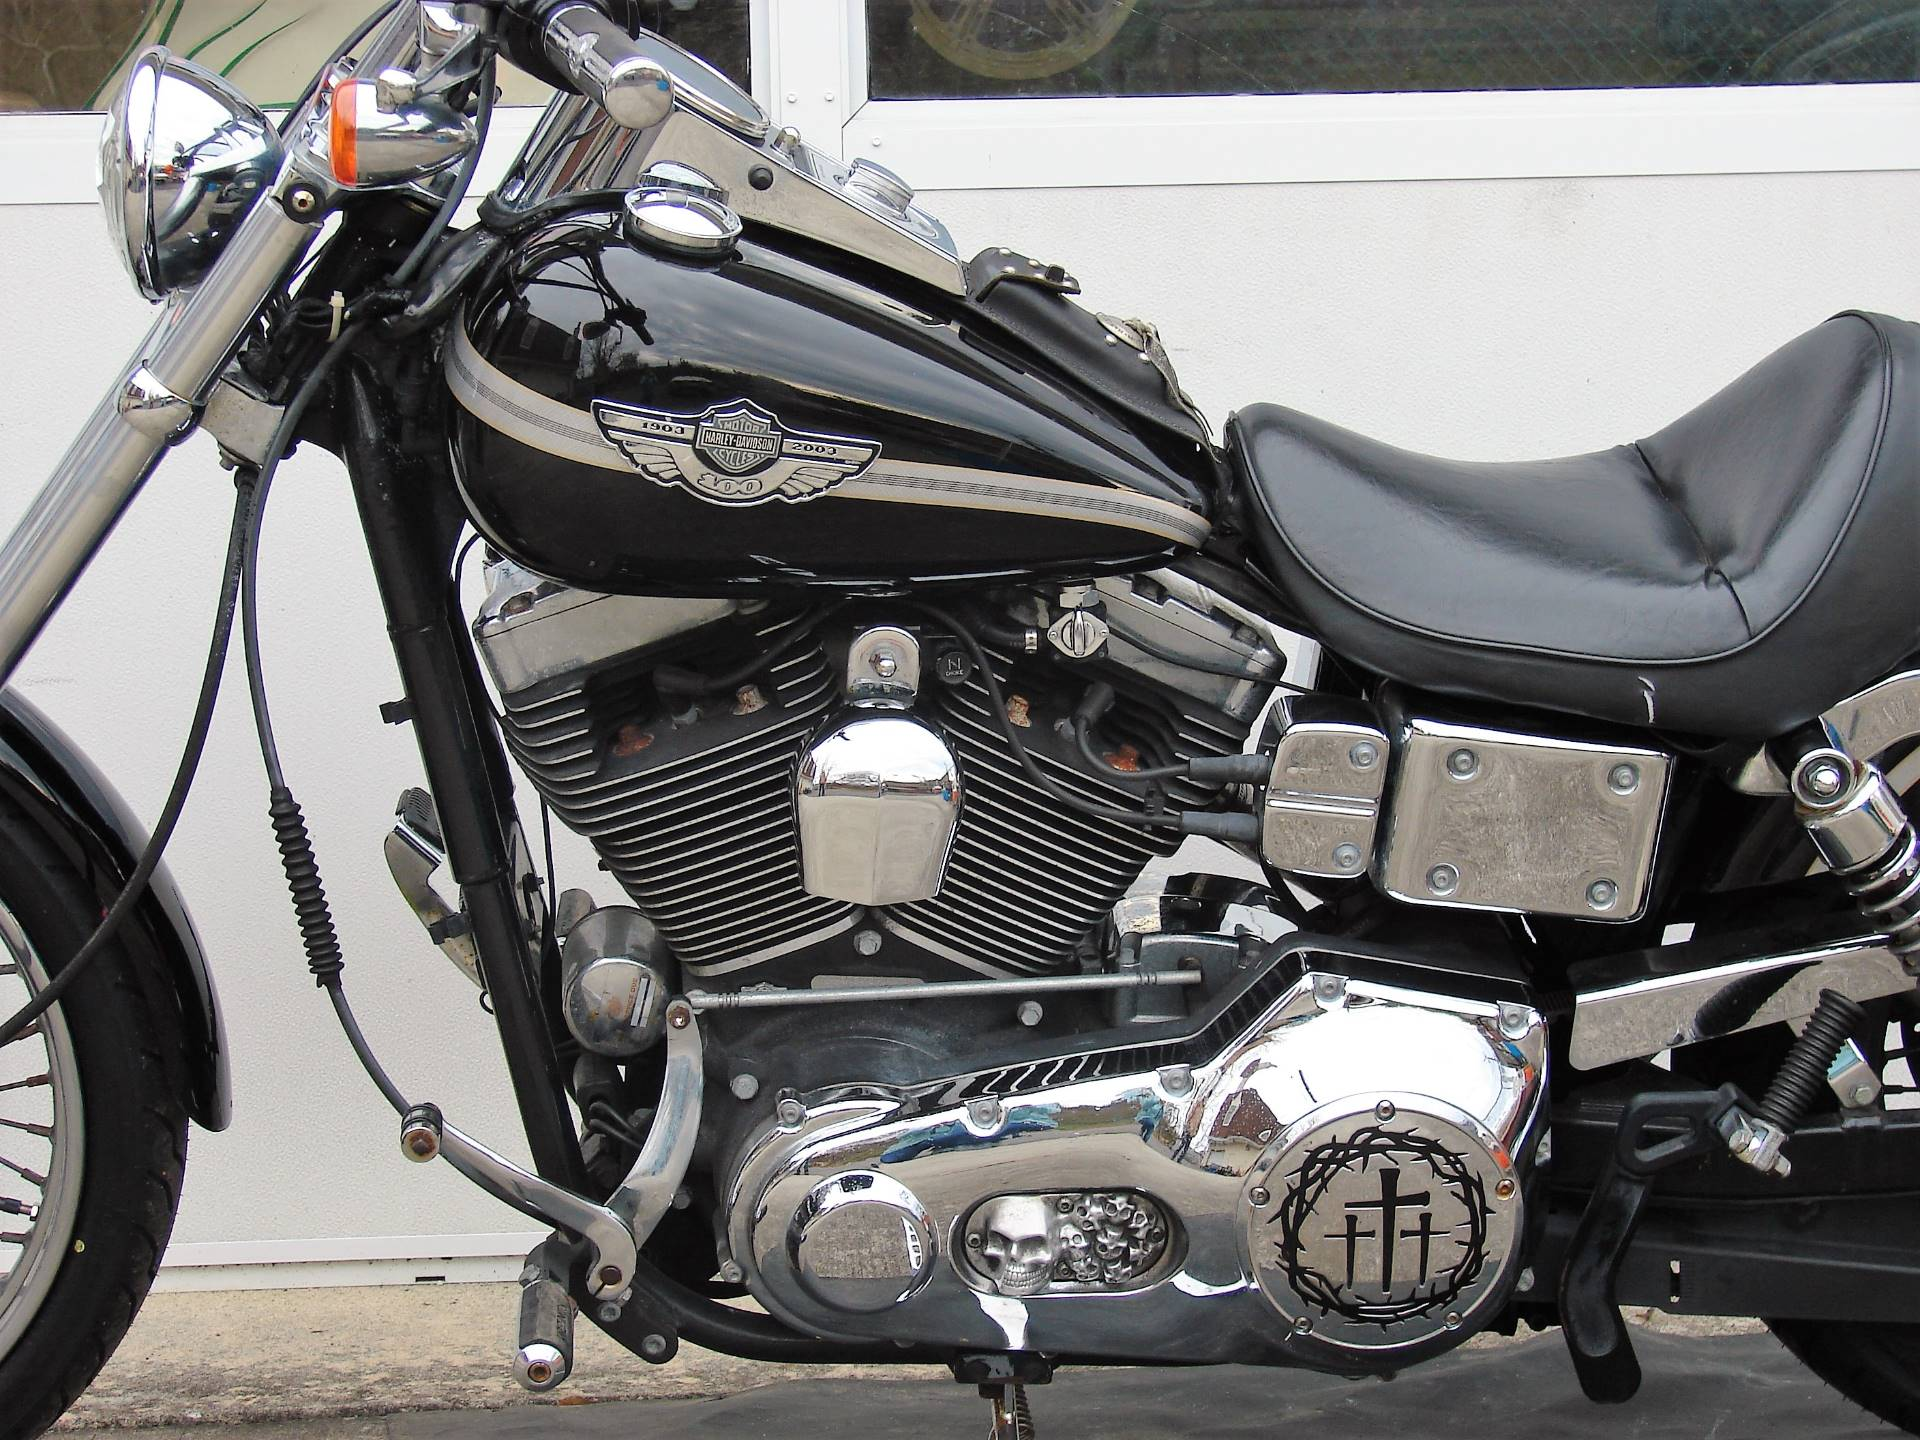 2003 Harley-Davidson Dyna Wide Glide in Williamstown, New Jersey - Photo 6